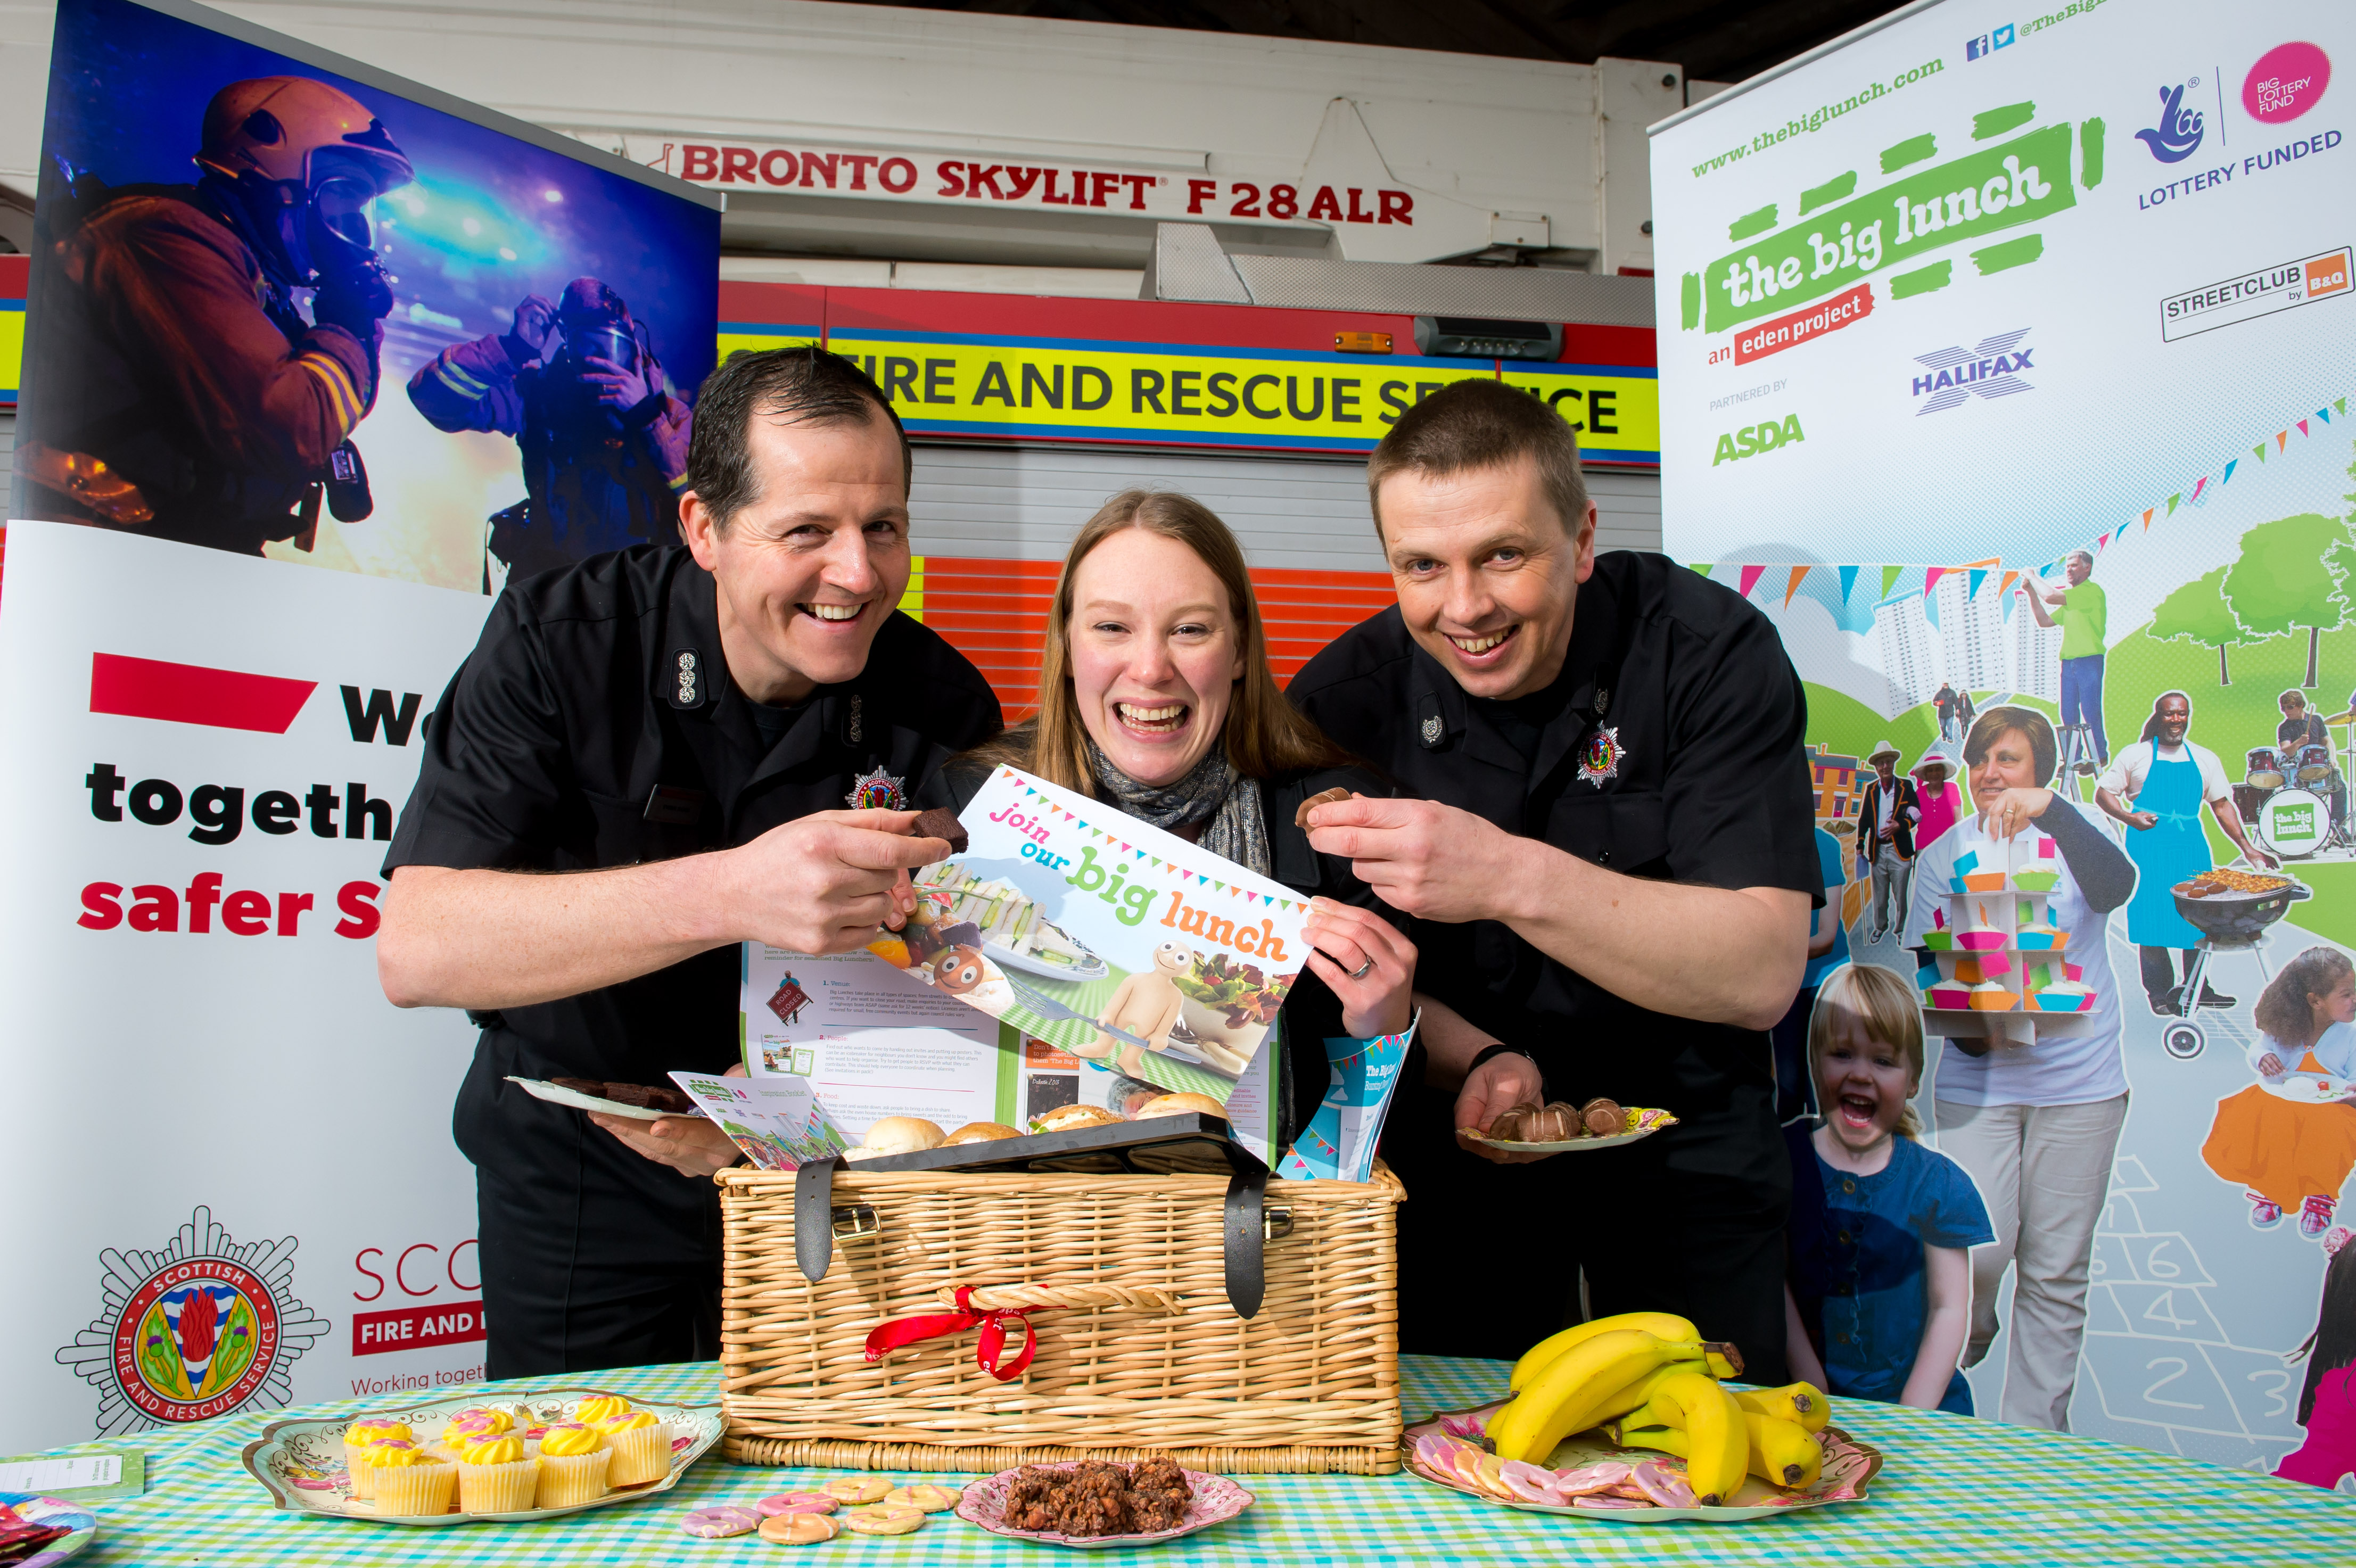 SFRS in partnership with The Big Lunch